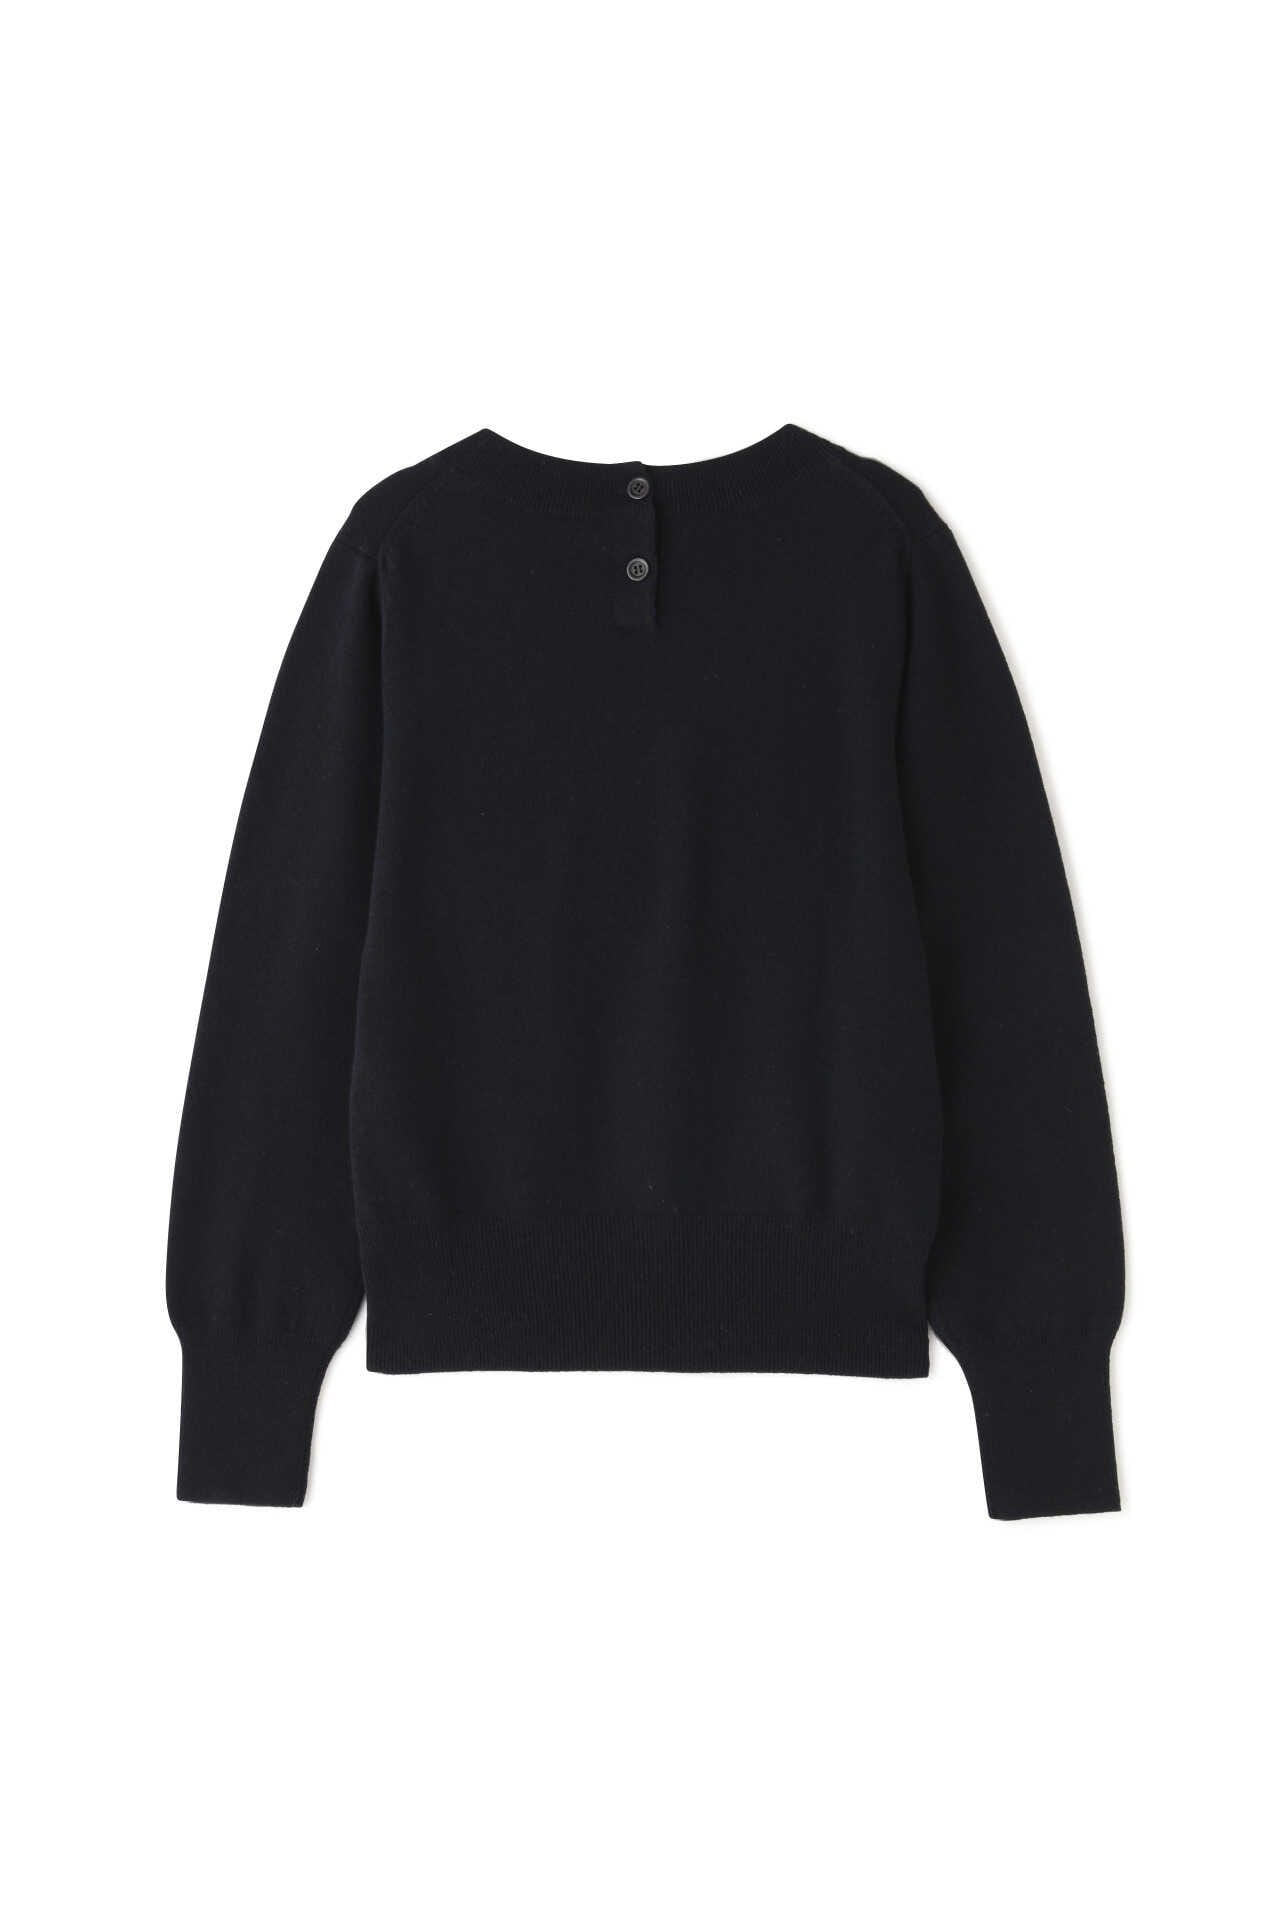 LAMBSWOOL CASHMERE11